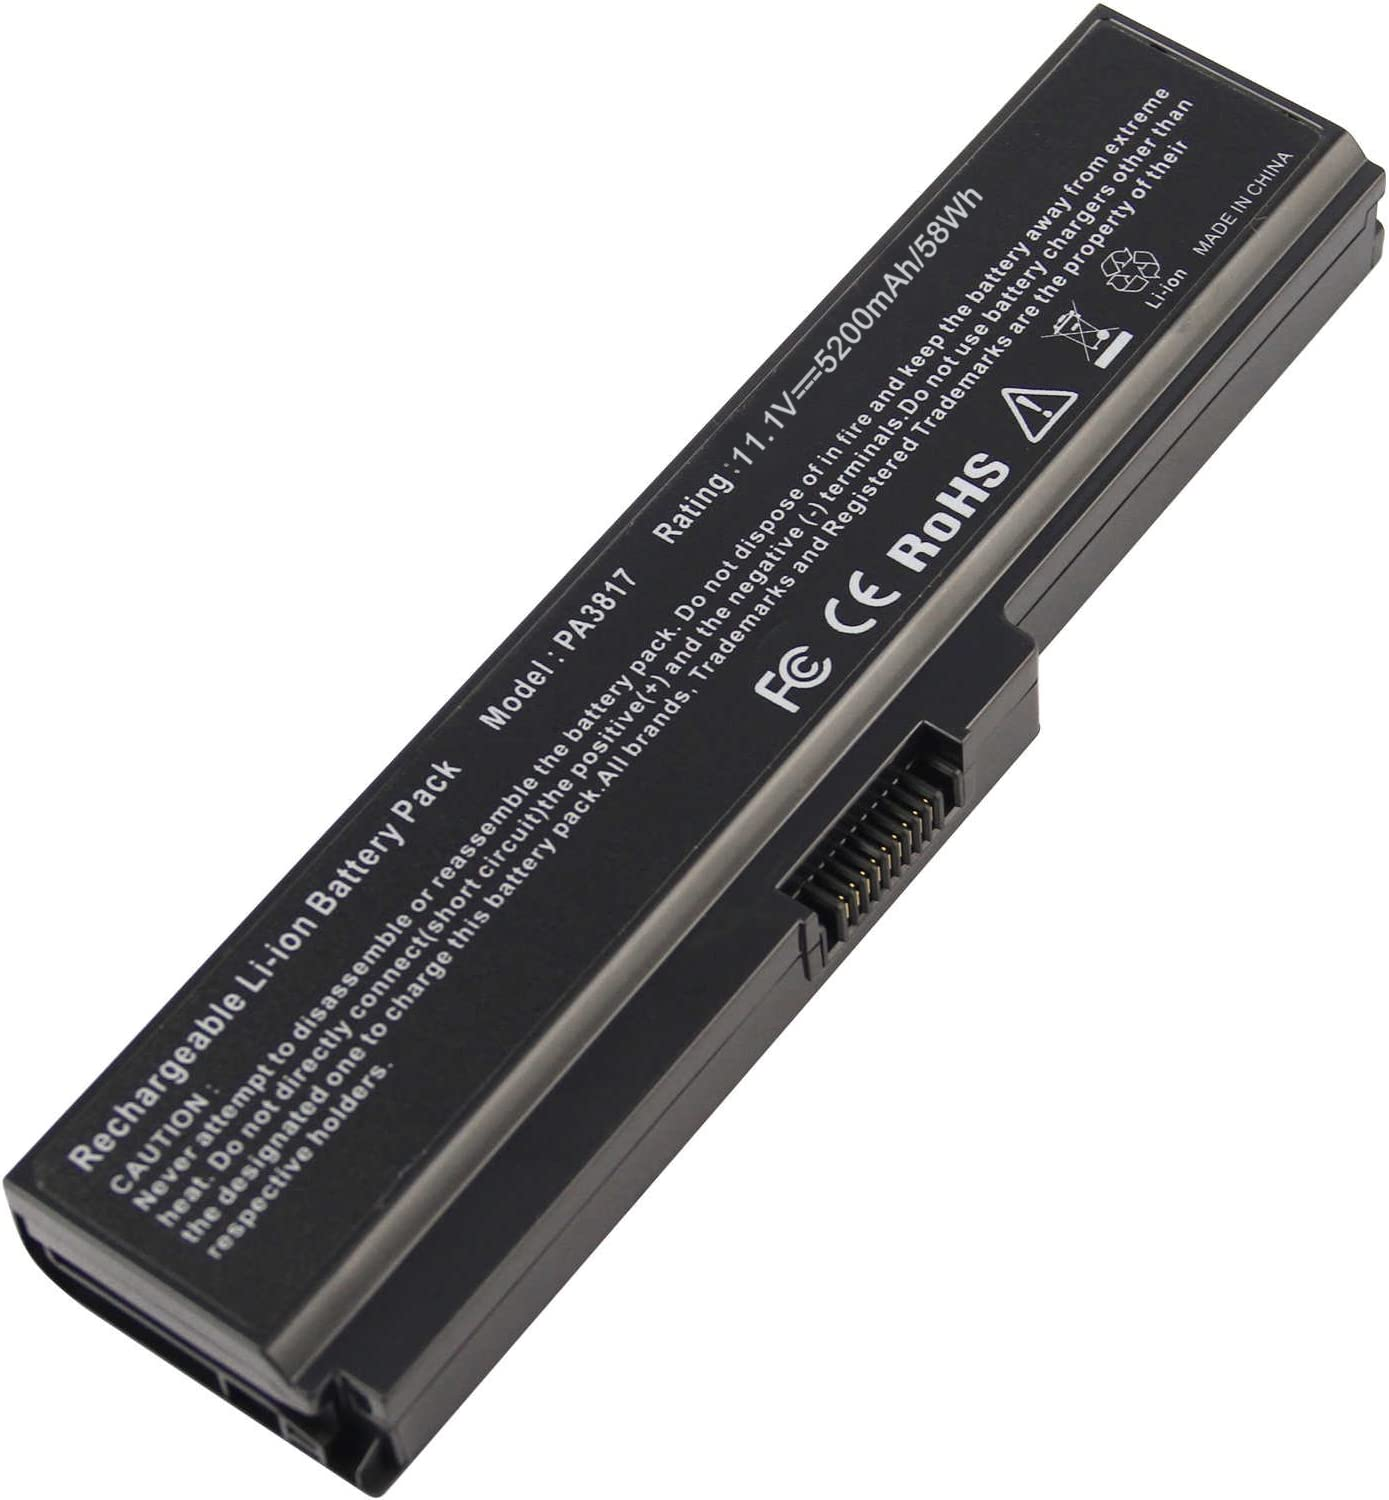 Battery for Toshiba L675 L750 L700 L755 P755 P750 C655 A655 A665 C655D L755D L755-s5167 L755-s5170 L755-s5175 L755-s5213 Satellite, Replace with Toshiba Battery PA3817U-1BRS PA3818U-1BRS